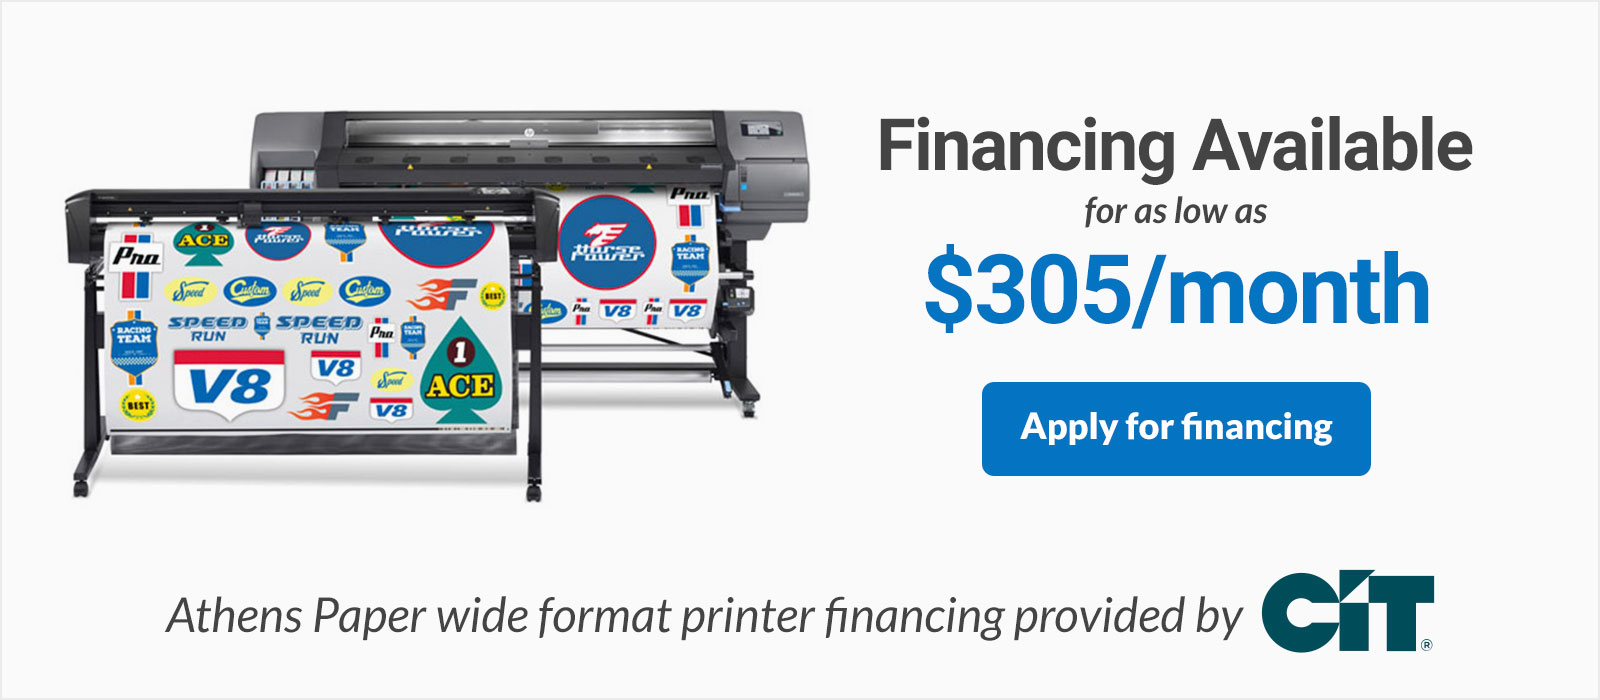 HP Latex 315 Print and Cut Financing HP 315 Printer and Cutter Bundle on sale discounted low monthly payments